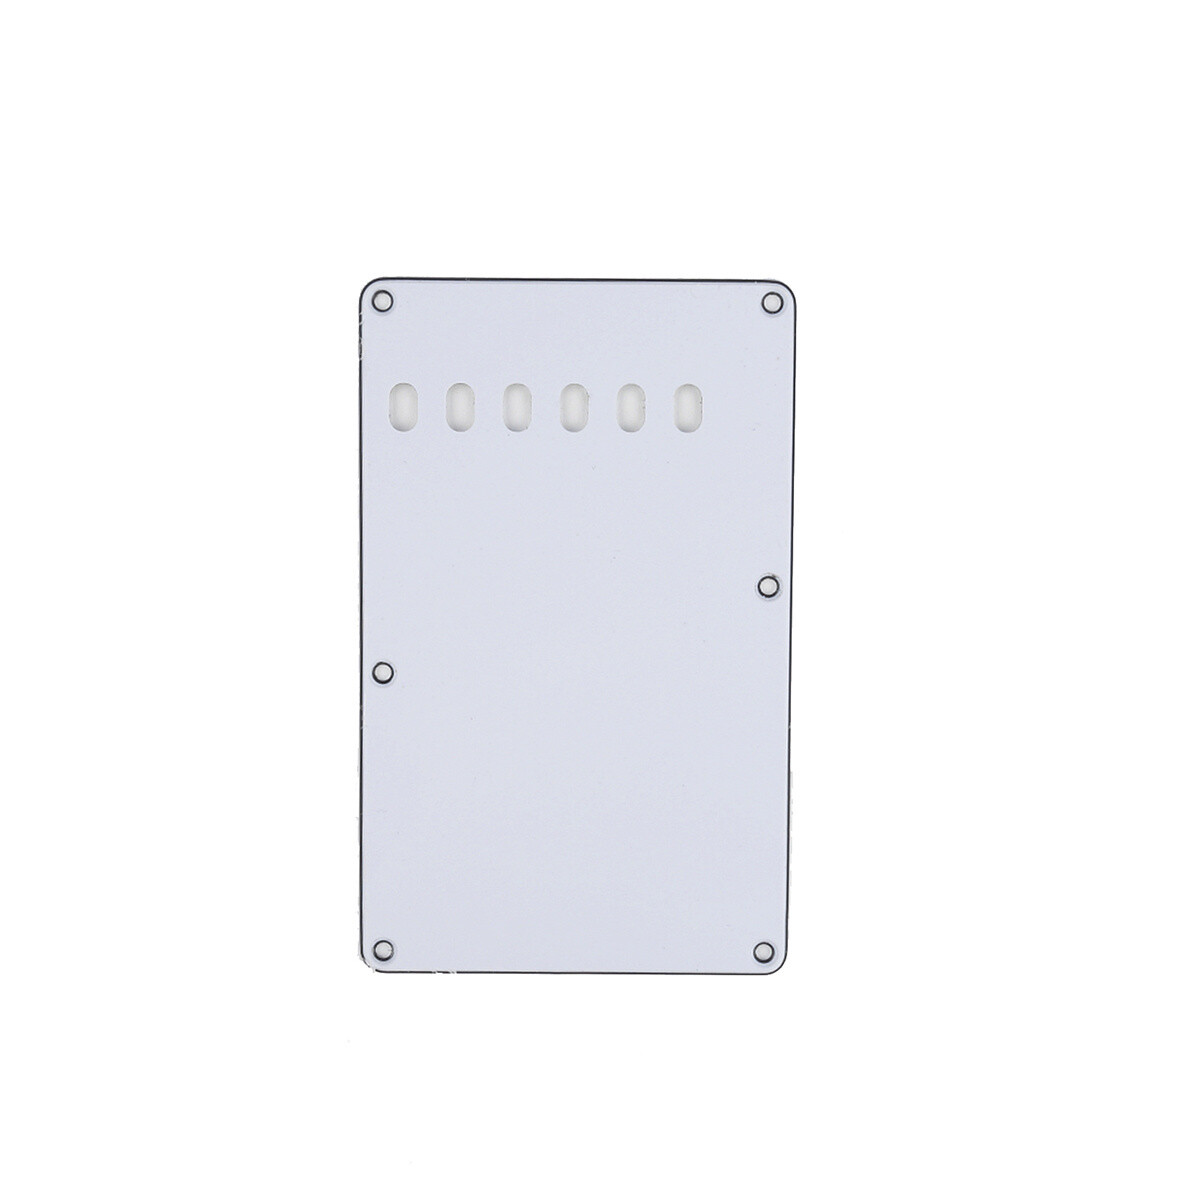 Brio White Vintage Style Back Plate Tremolo Cover 3 ply - US/Mexican Fender®Strat® Fit